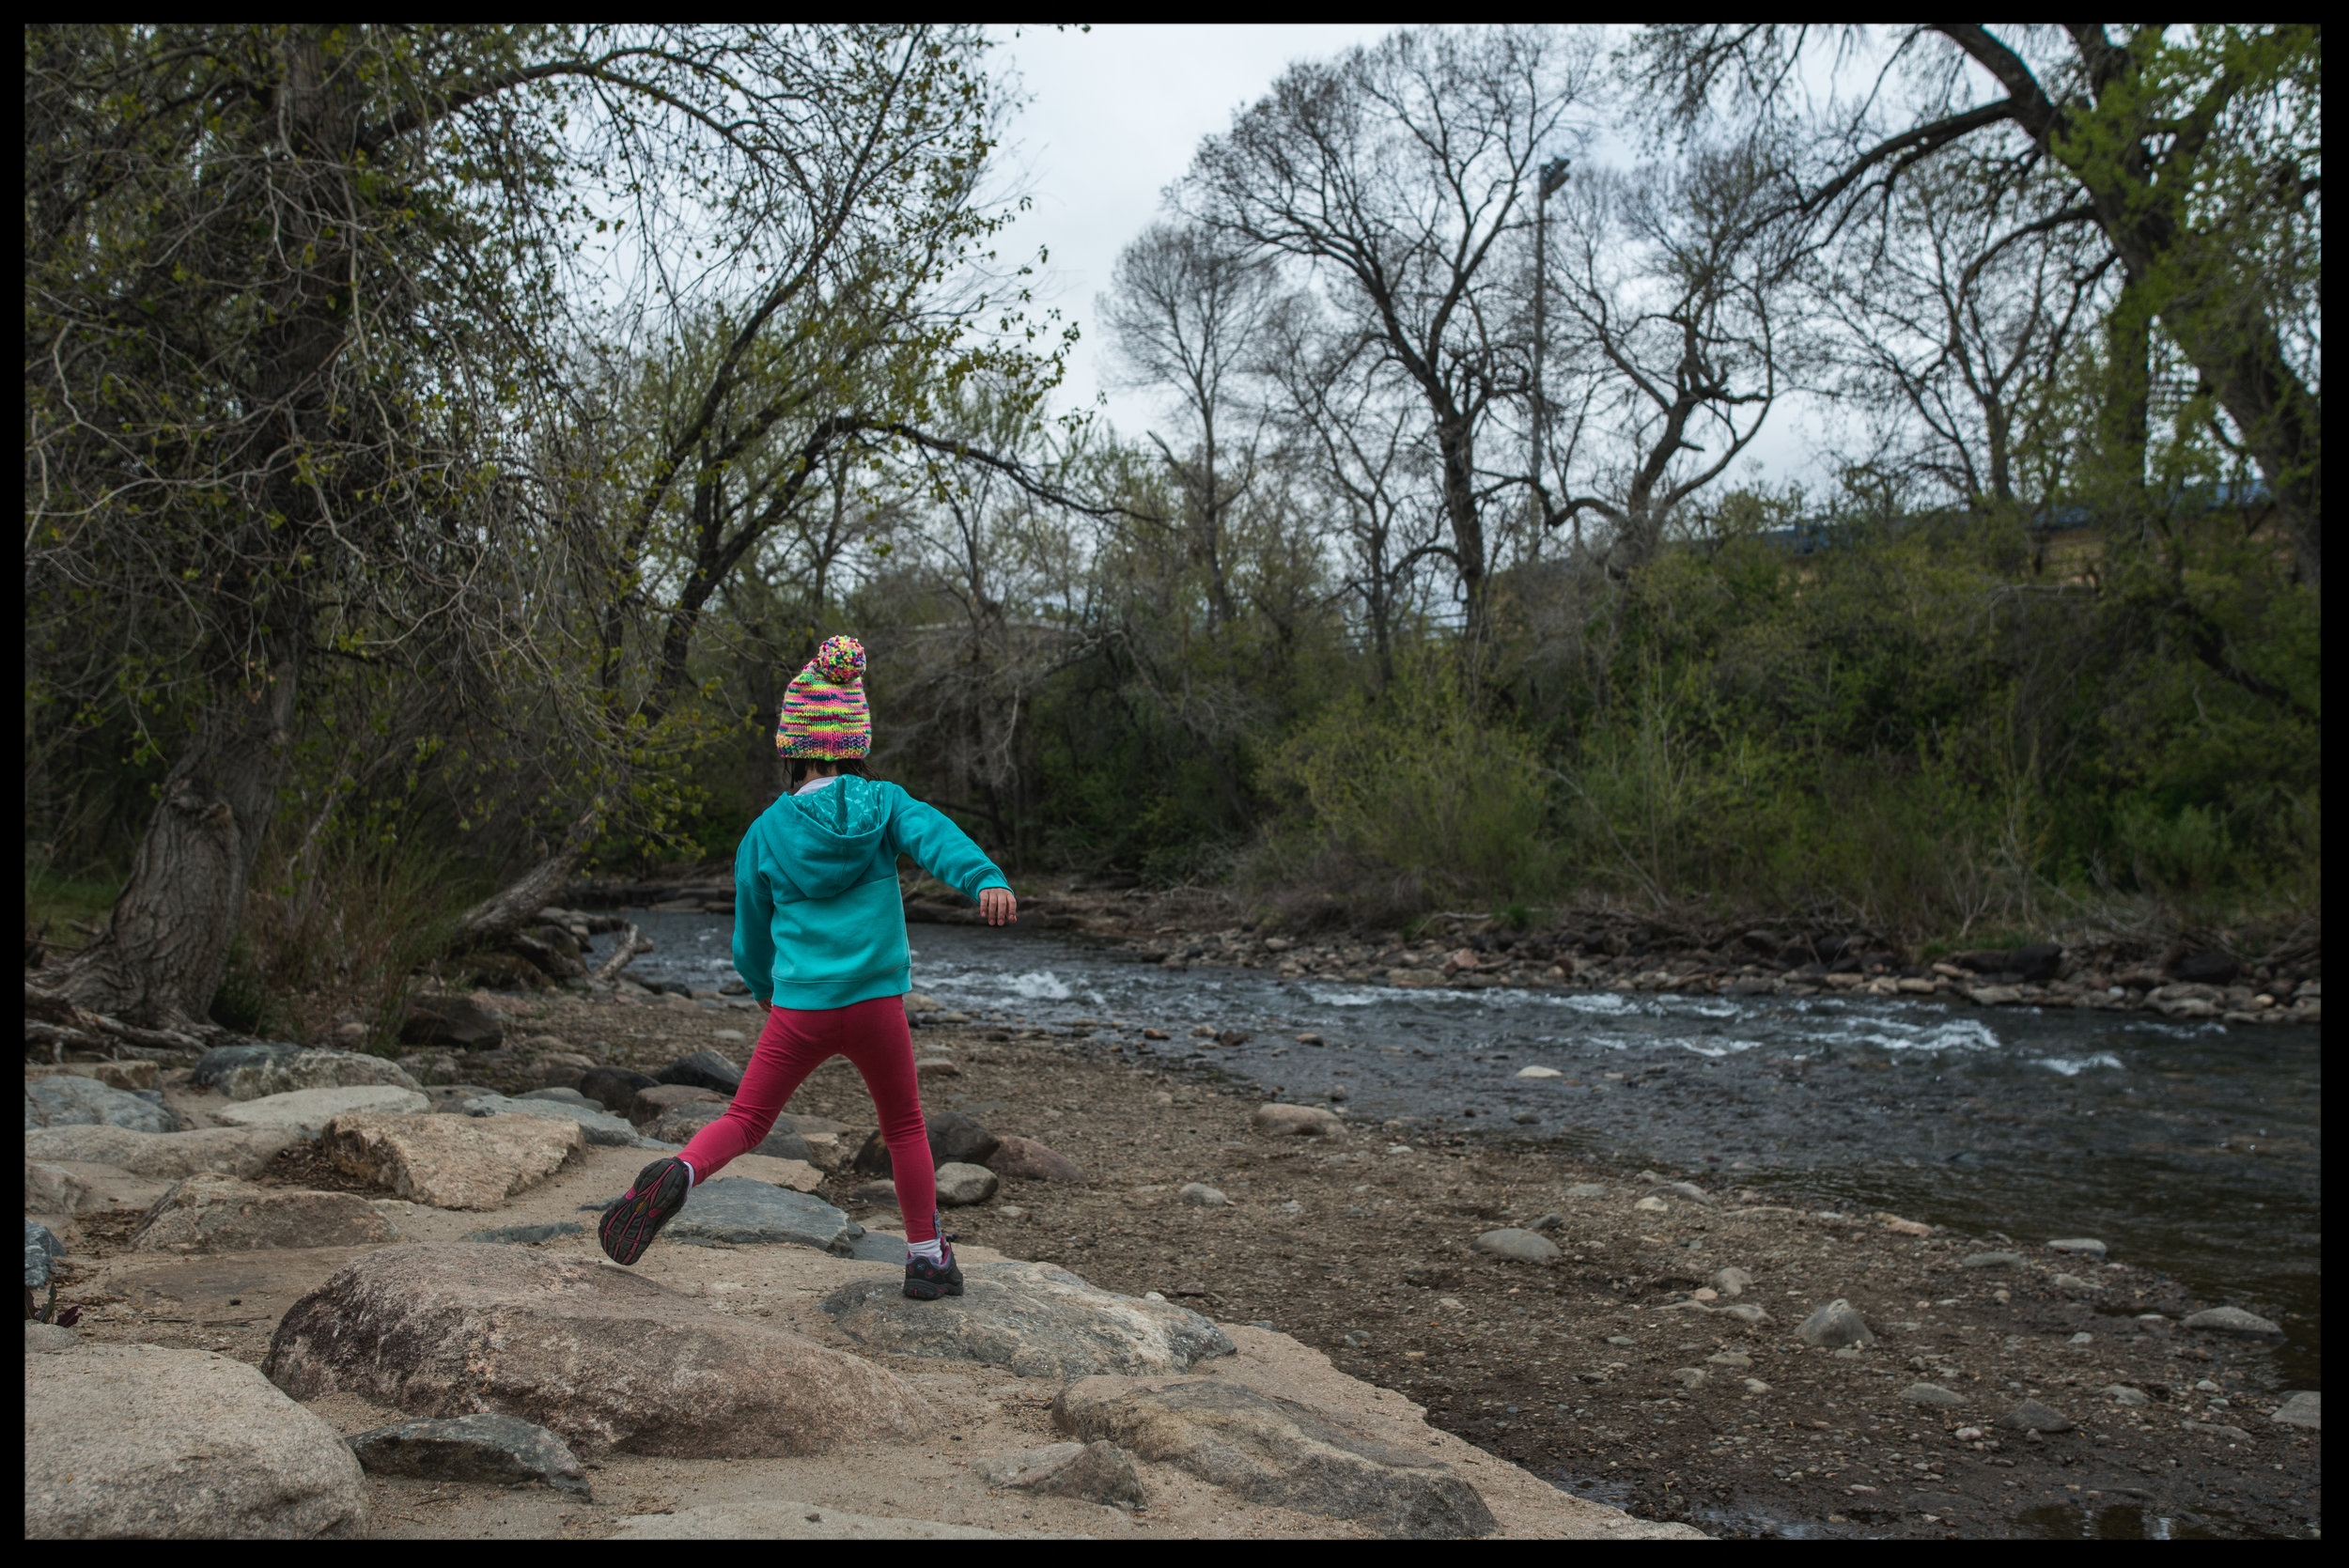 Young girl running on the rocks near a river, color